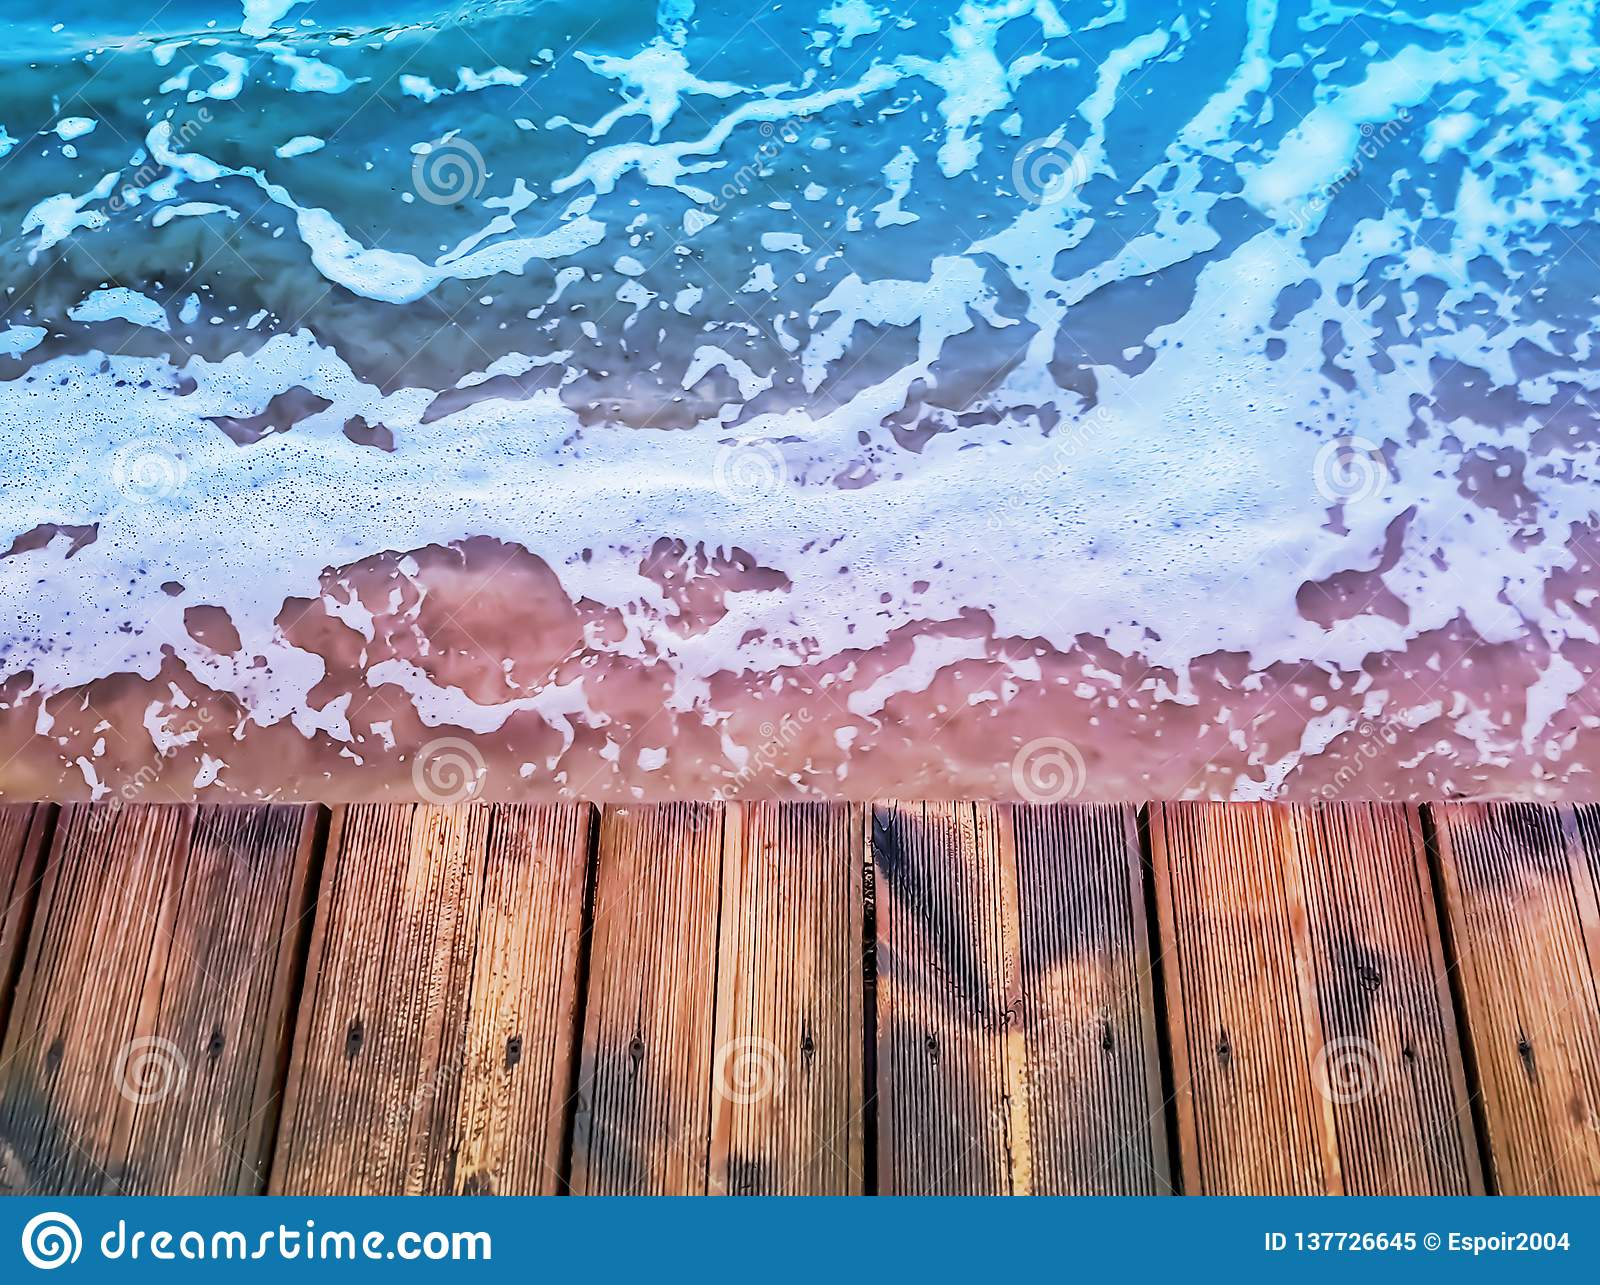 Wooden deck waterfront floor background texture and blue sea water surface with foam